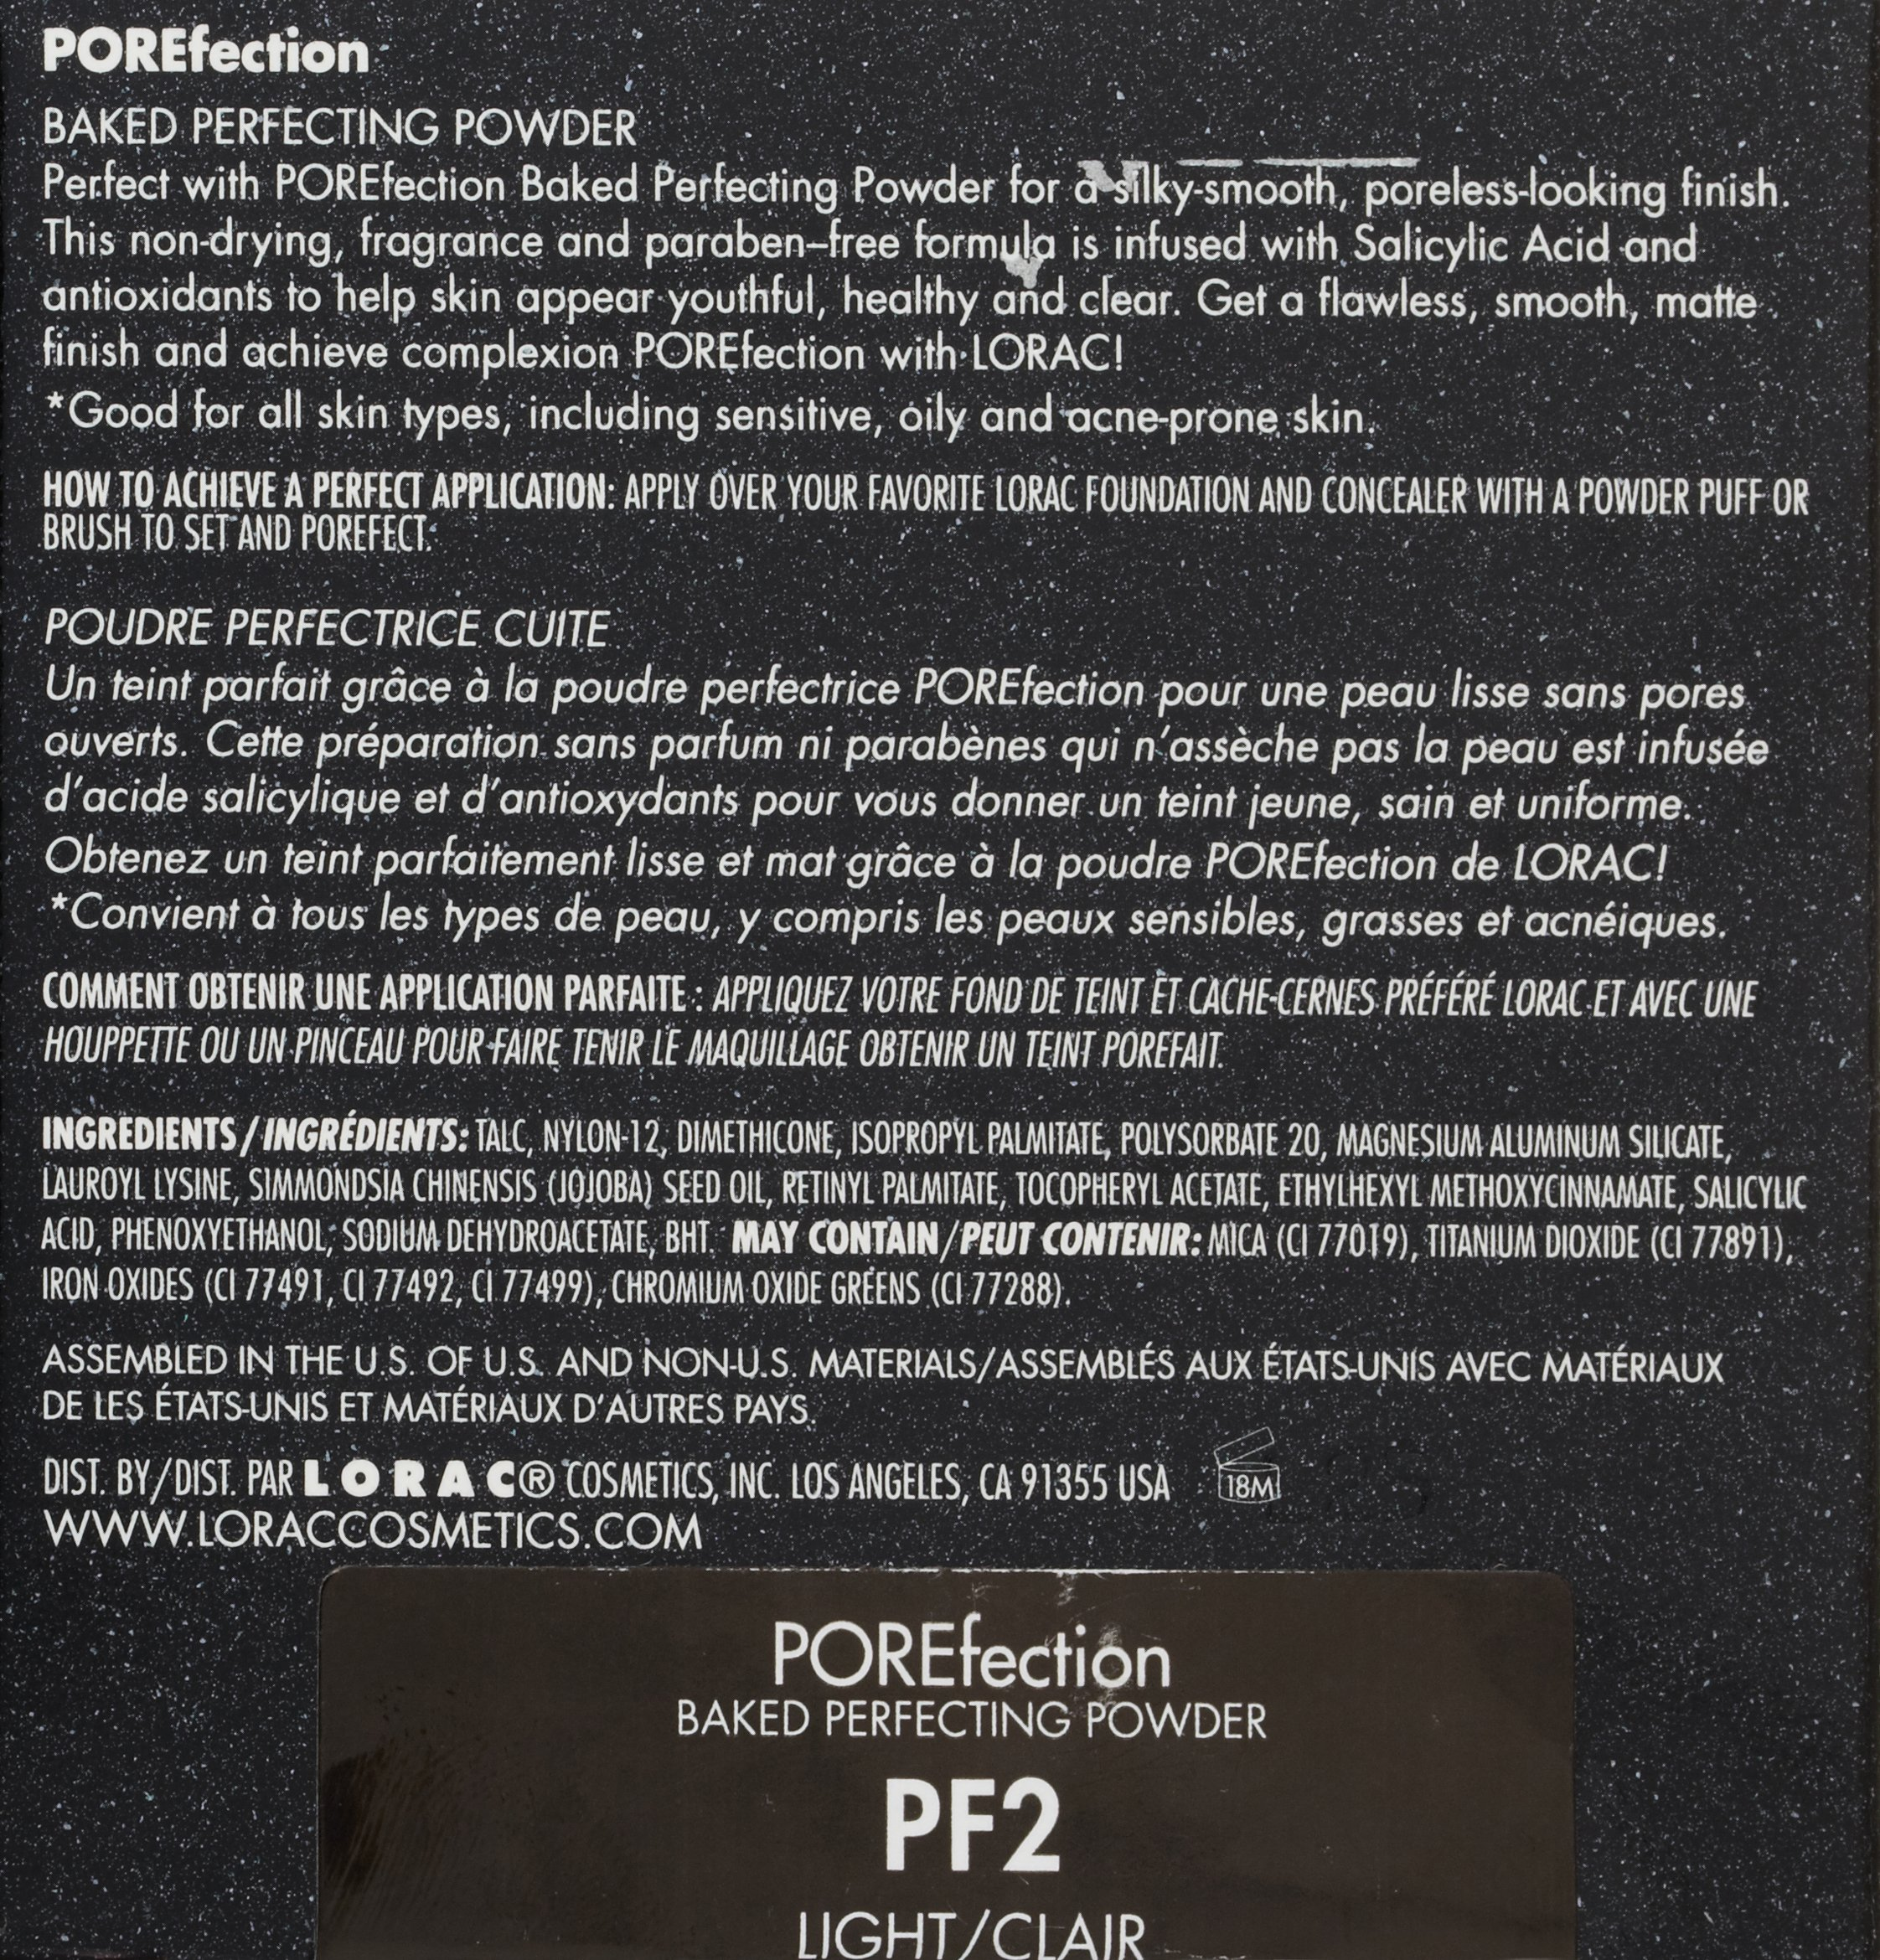 LORAC POREfection Baked Perfecting Powder, PF2 Light by LORAC (Image #3)